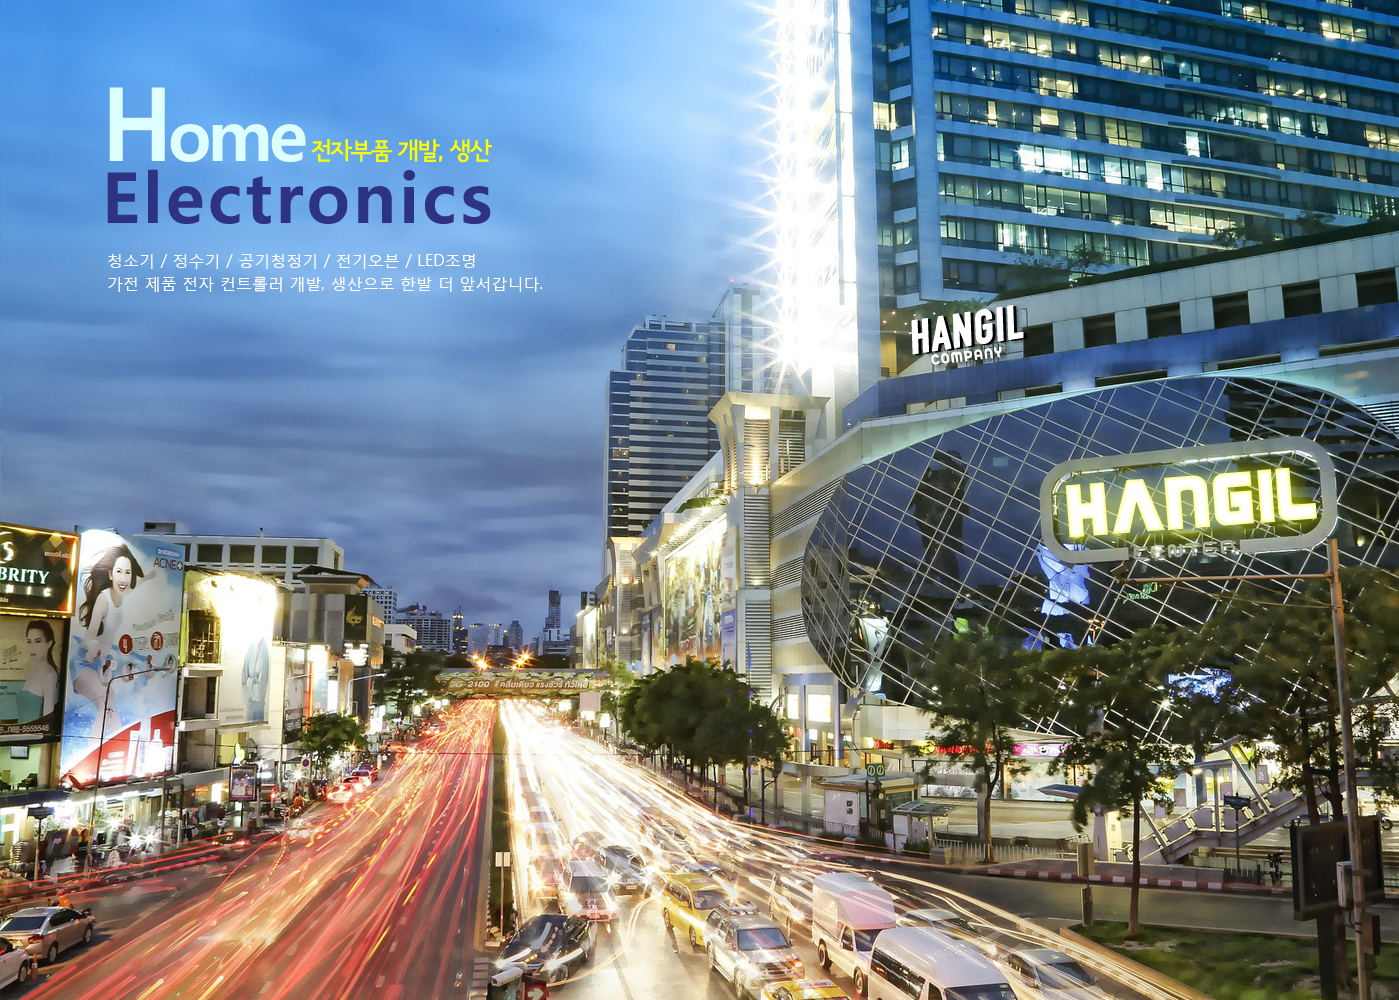 Home Electronics Development and manufacturing of electronics